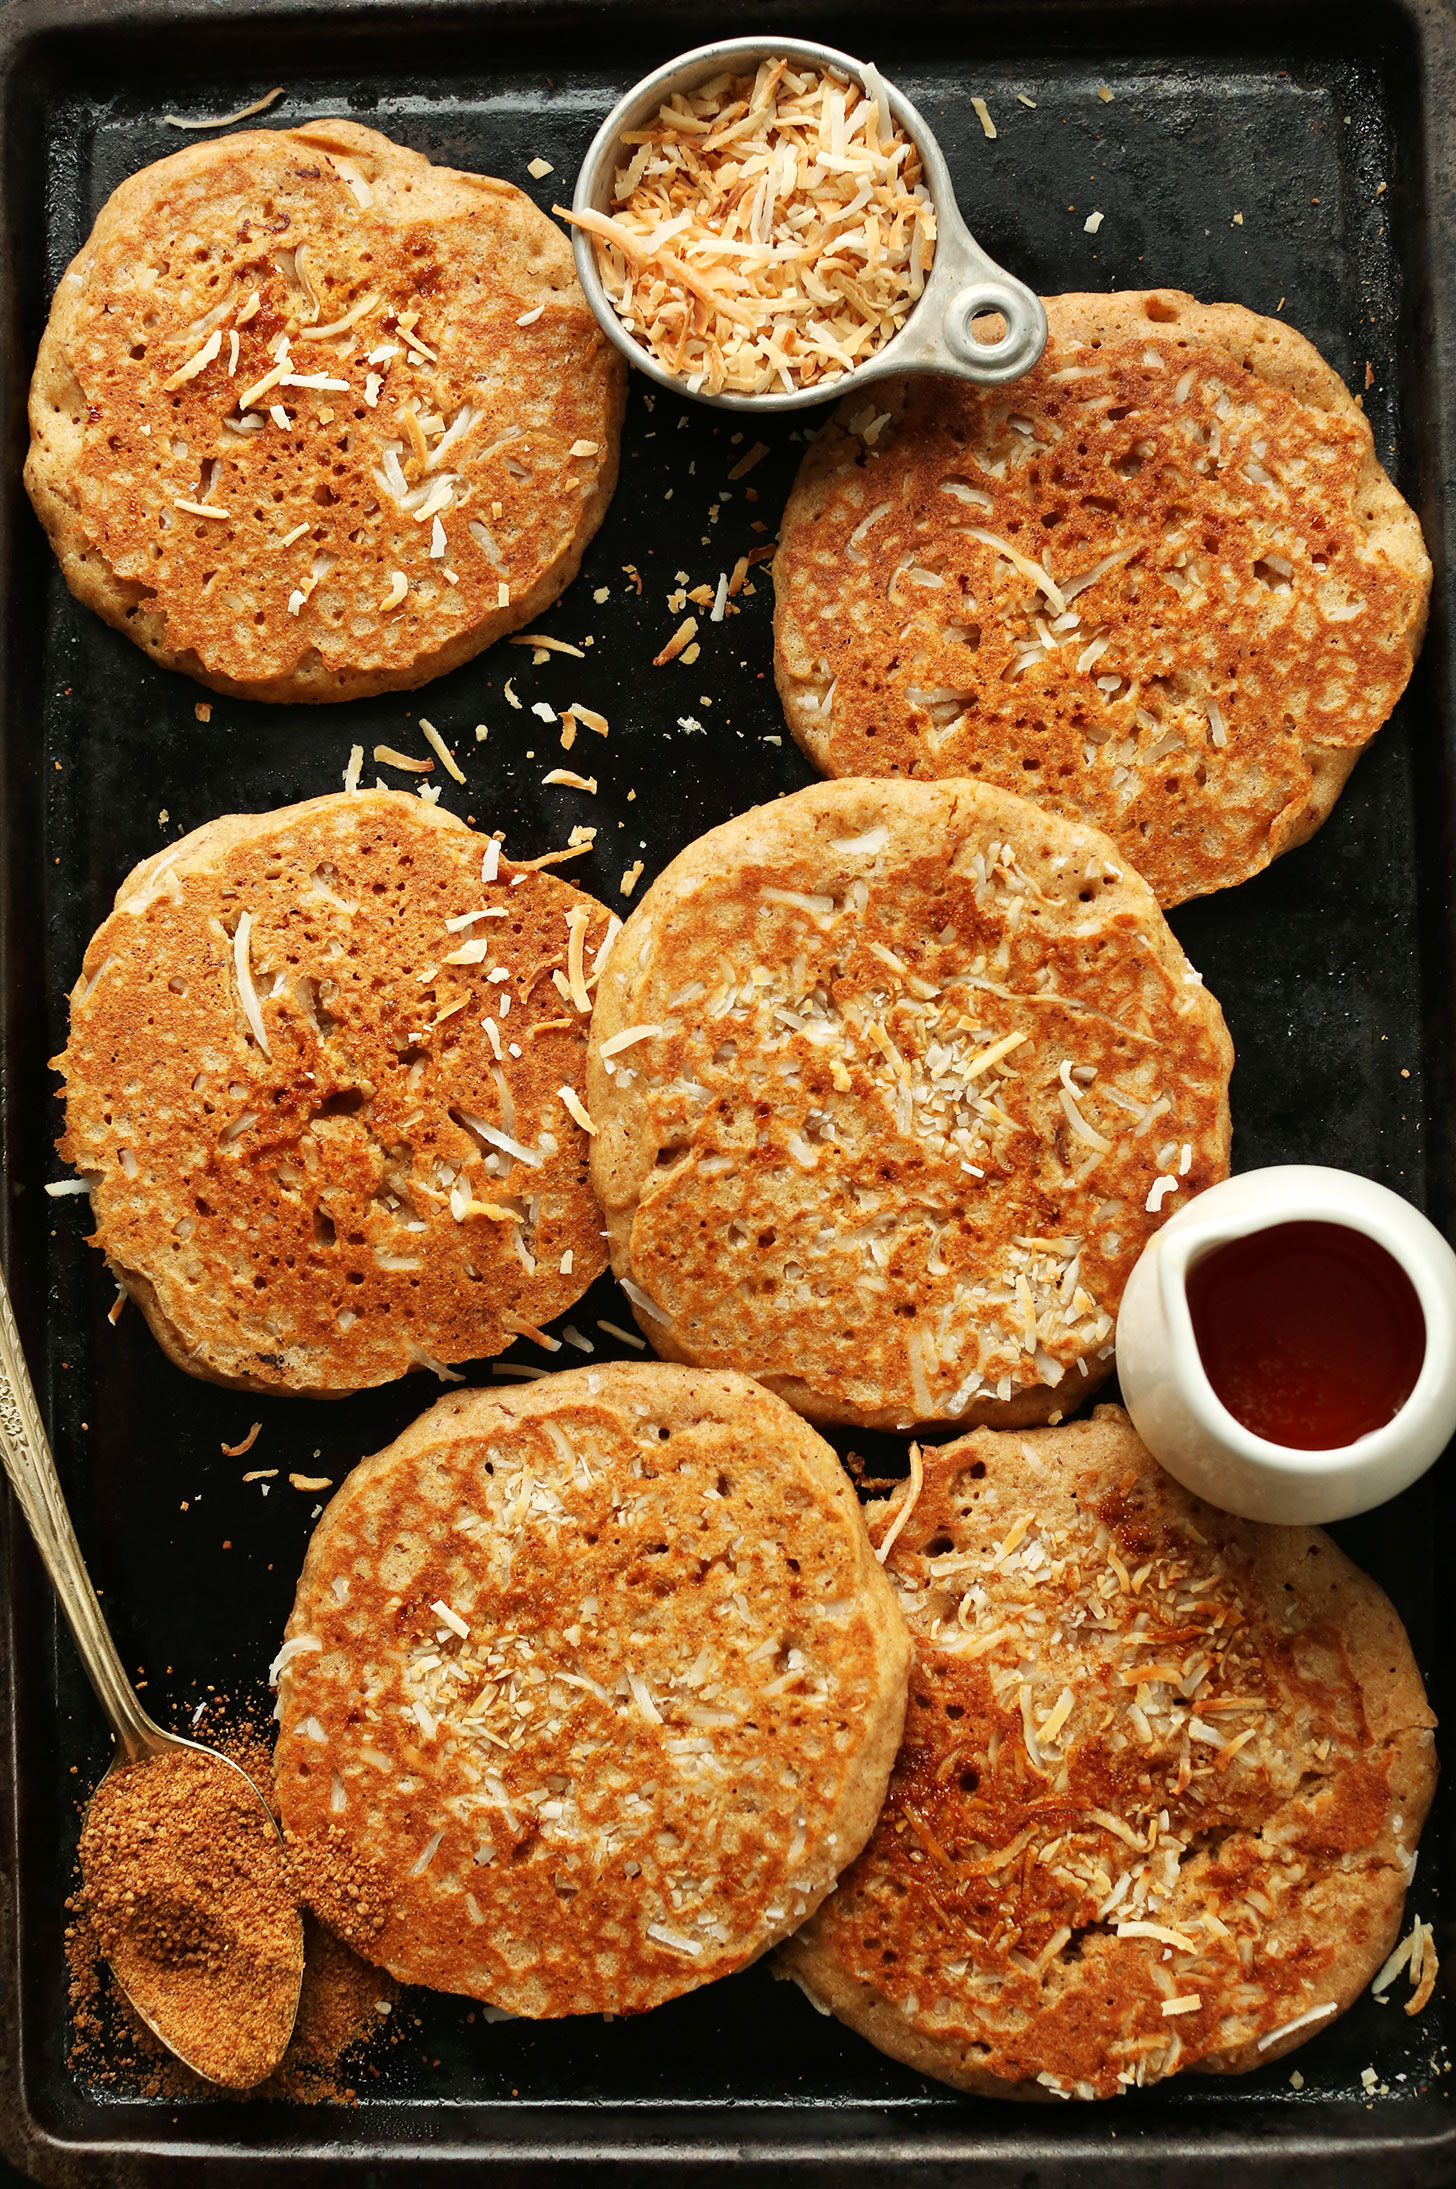 Baking sheet with freshly made vegan Toasted Coconut Pancakes and maple syrup for serving